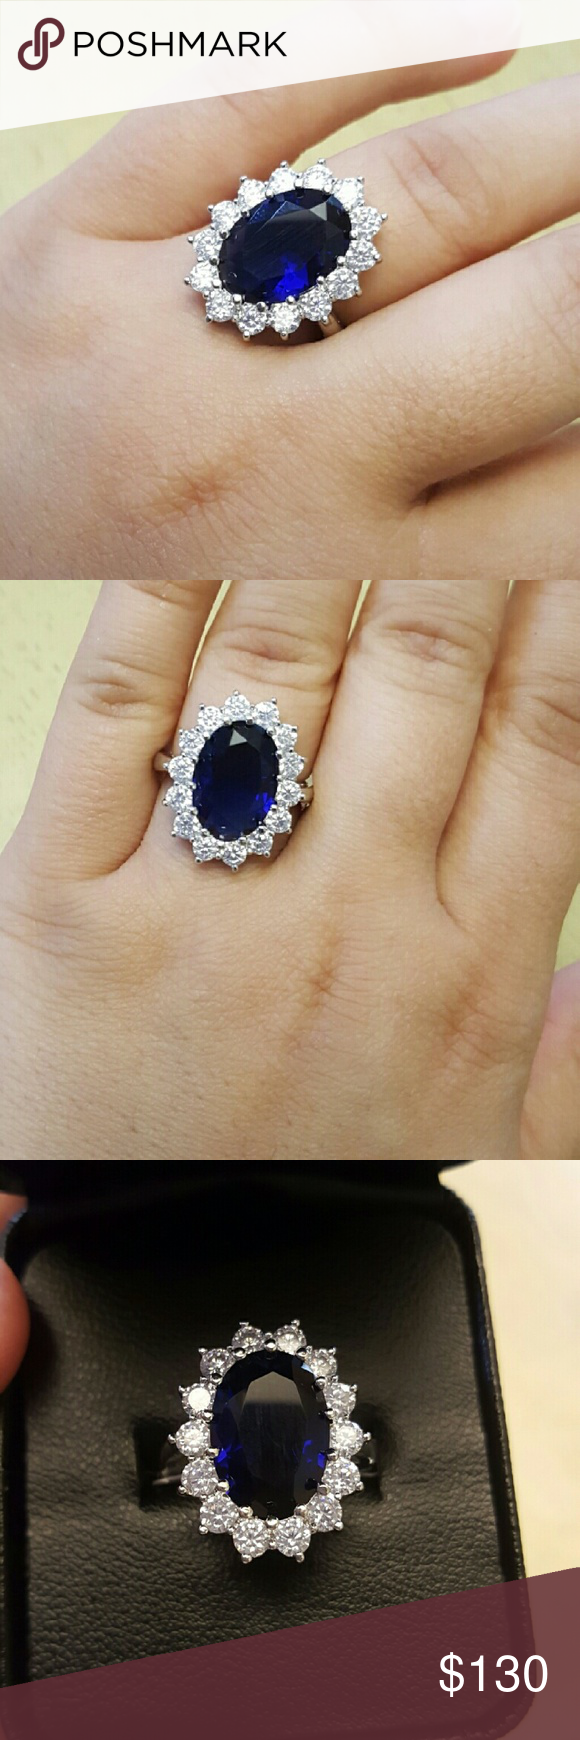 SALE! 18k Sapphire Swarovski Ring . Brand new never used comes with ... db5a79376